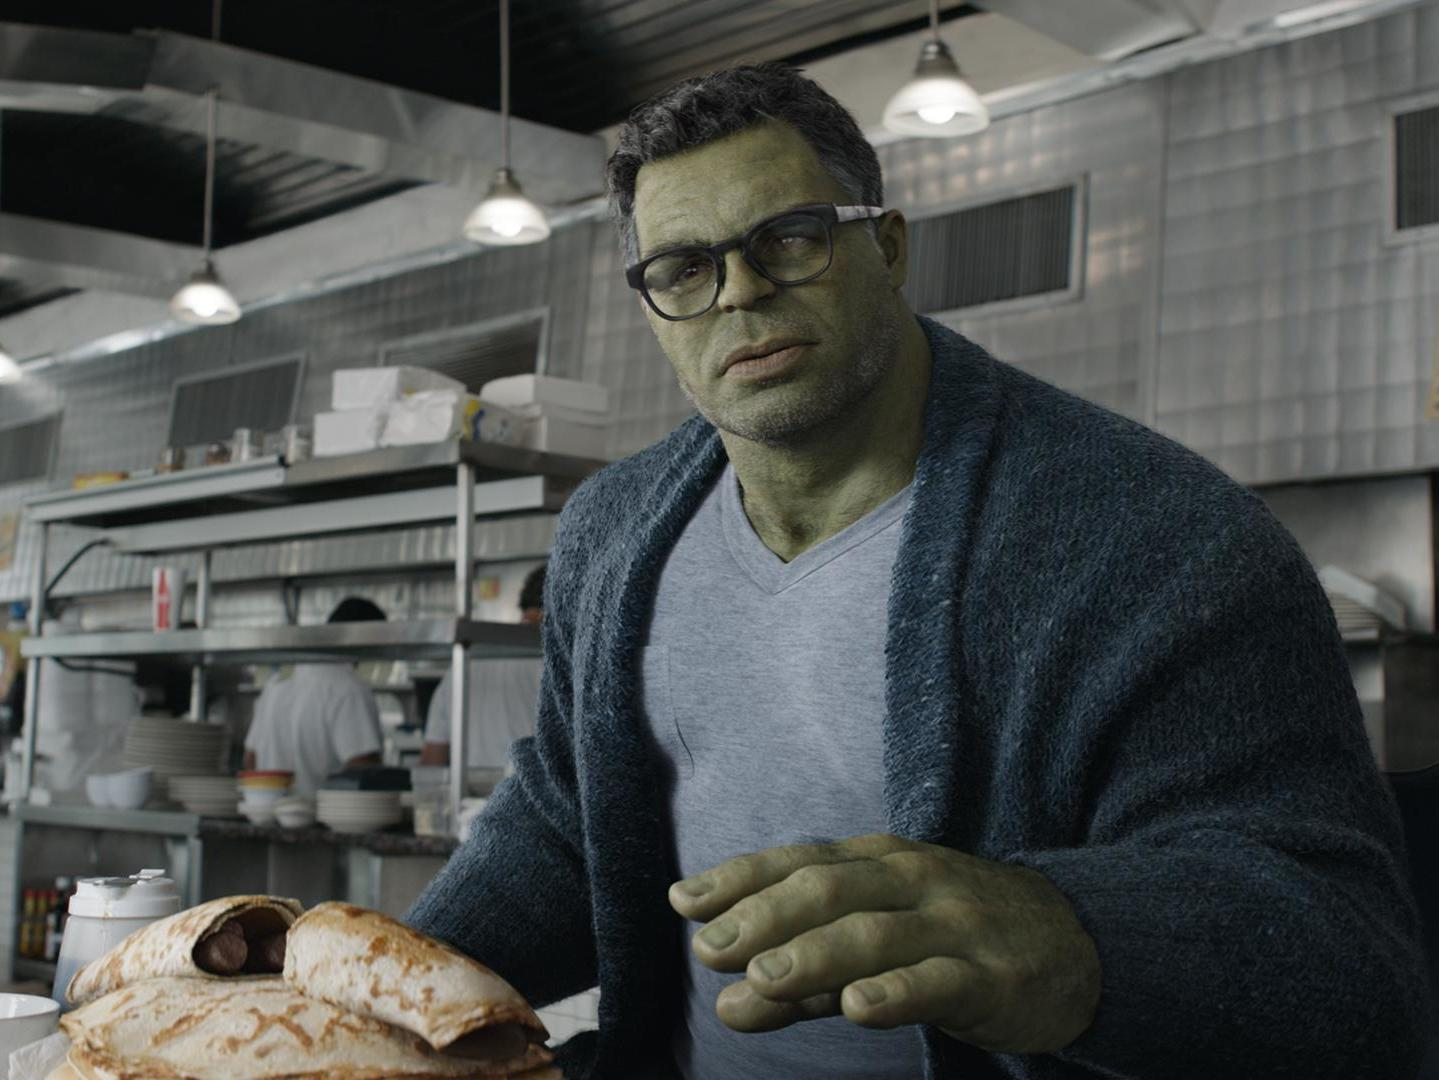 Avengers 5 plot was teased in Endgame Easter egg, according to fan theory